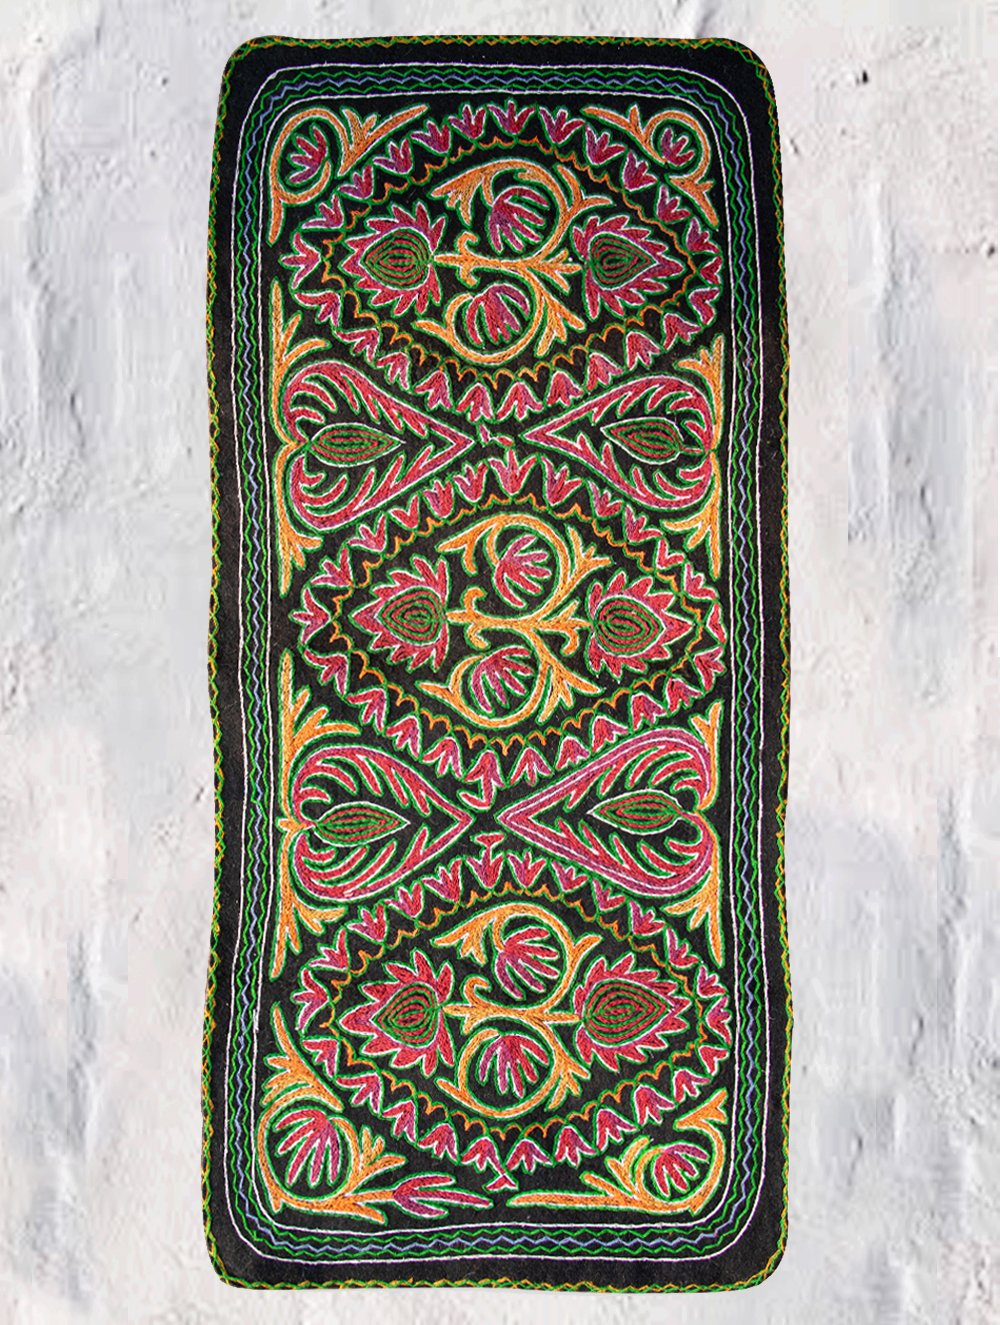 Hand Felted & Embroidered Kashmiri Namda Woollen Meditation / Yoga Rug